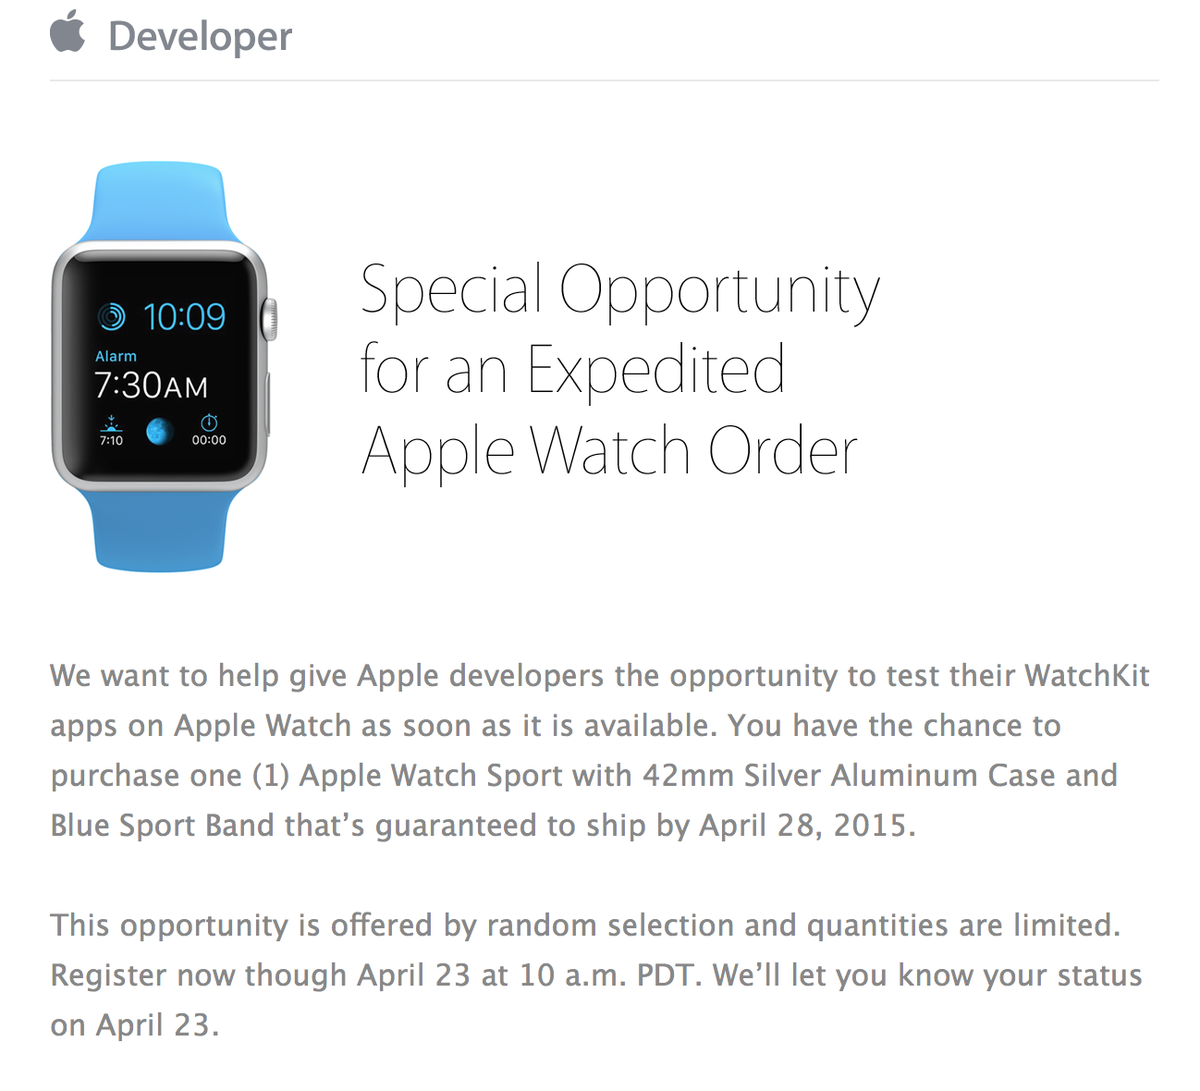 Just received this from Apple http://t.co/LSnw2I3s3t